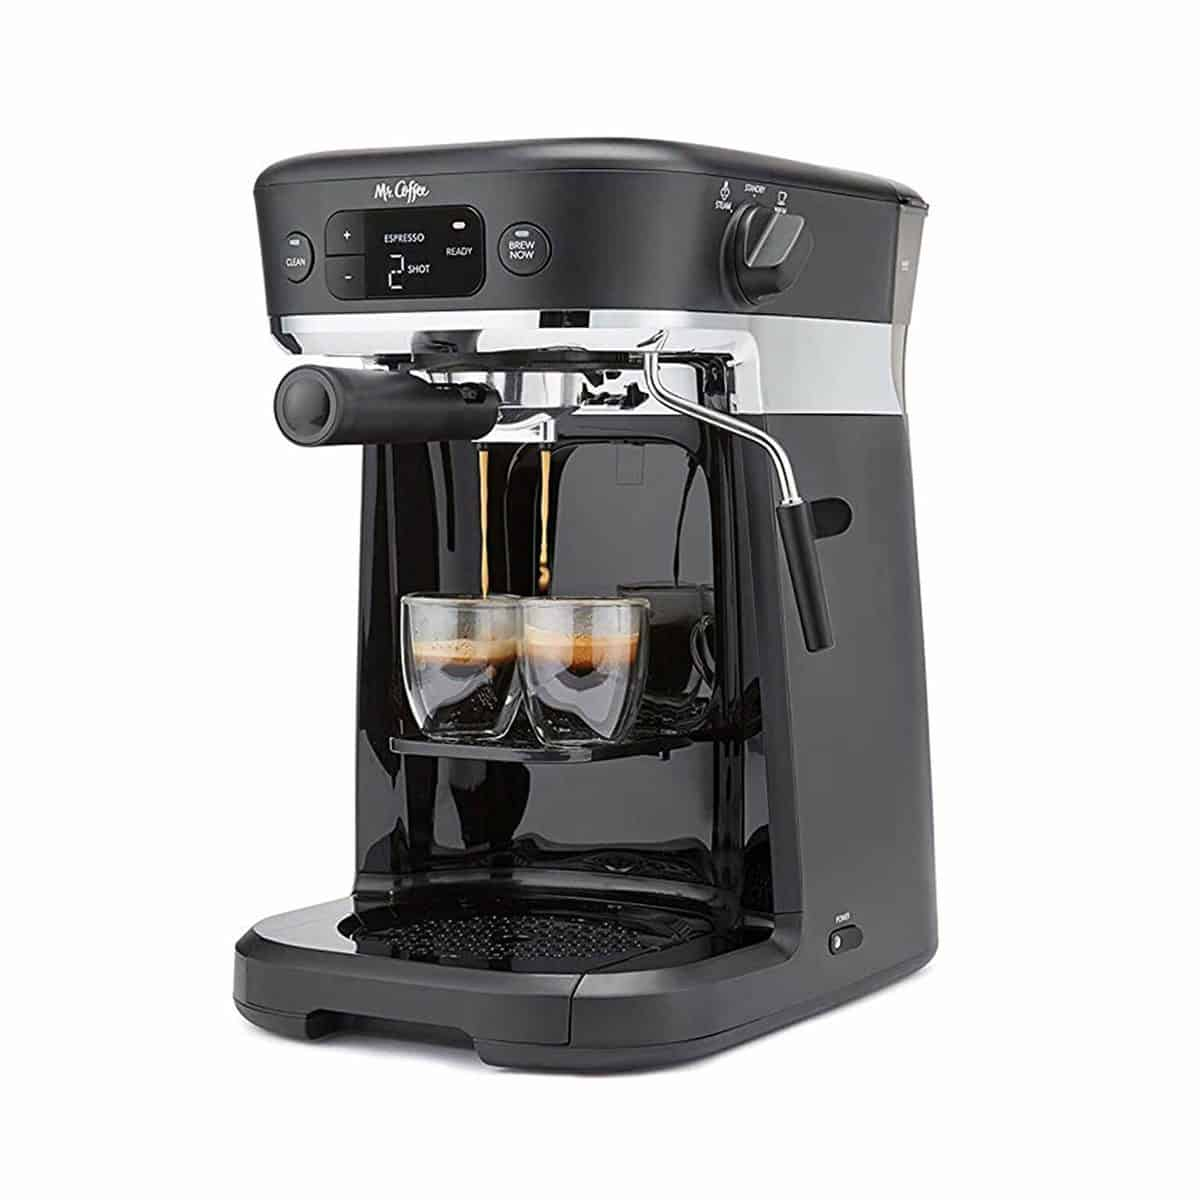 Mr. Coffee All-in-One Occasions Coffee and Espresso Maker